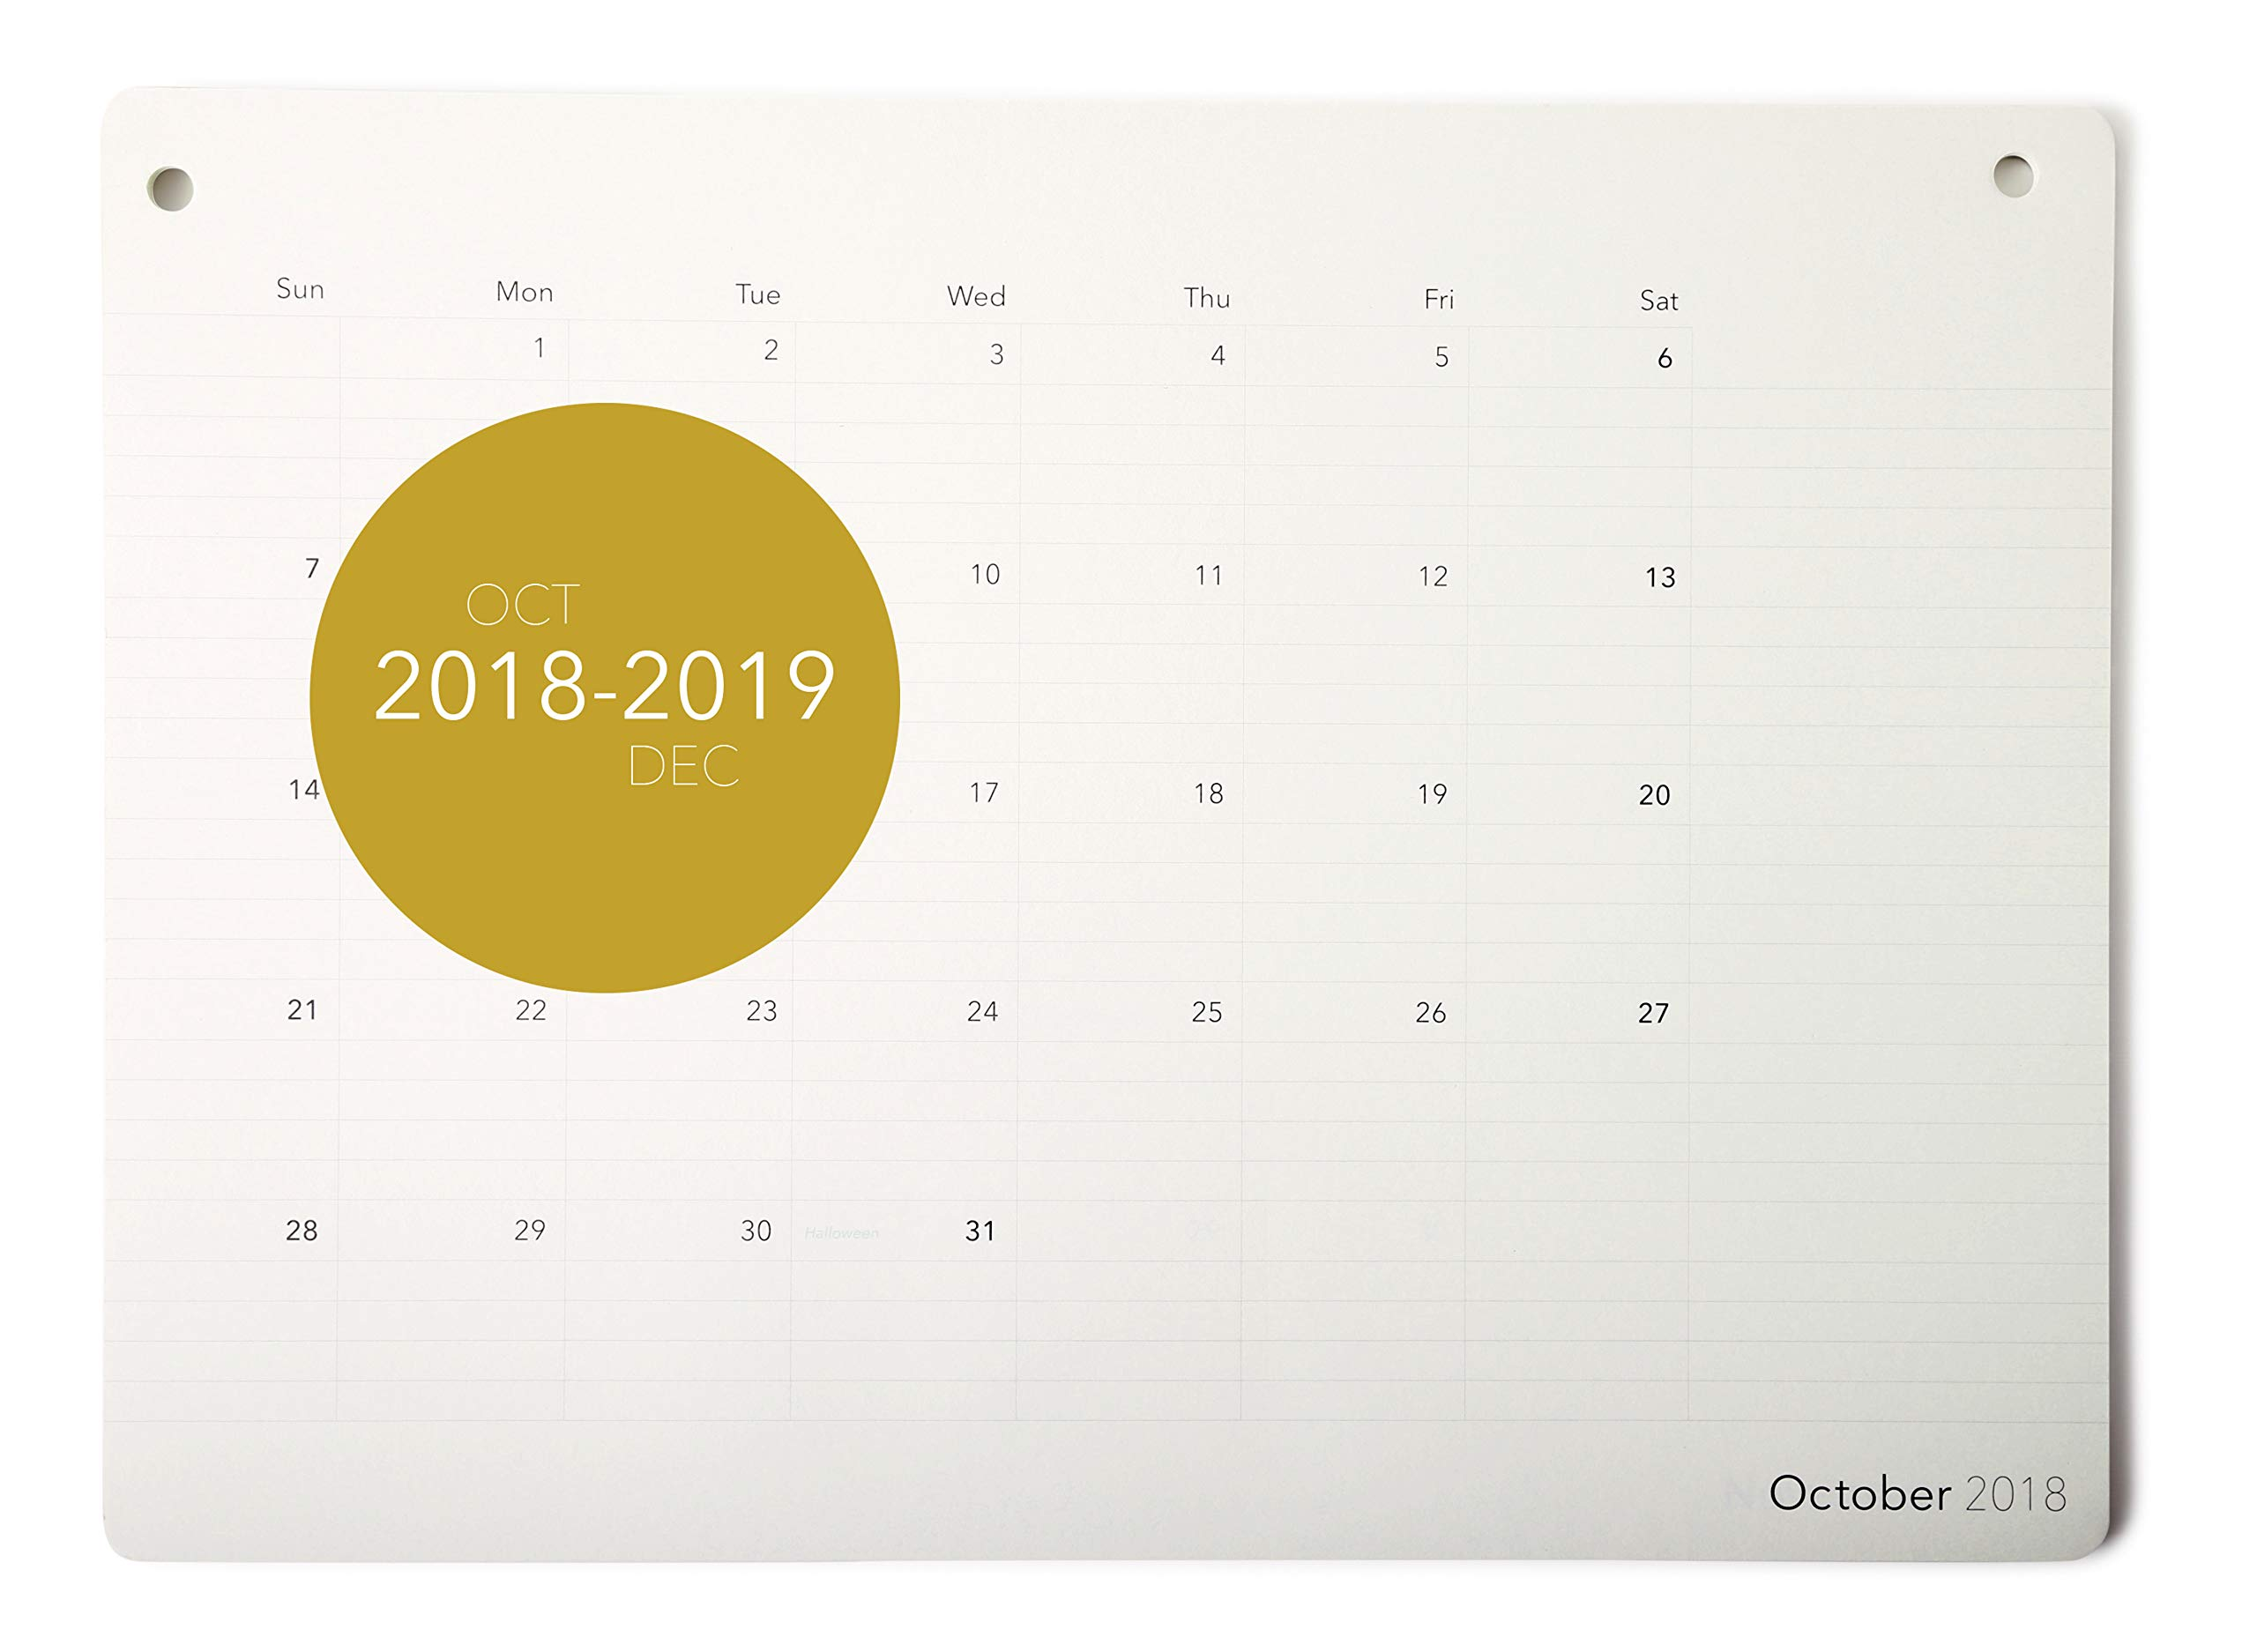 Elegant Desk Calendar 2018-2019 · Monthly Desk Pad Planner · October 2018 - December 2019 · 17.8'' x 13'' · Wall Calendar · Academic (Ruled)